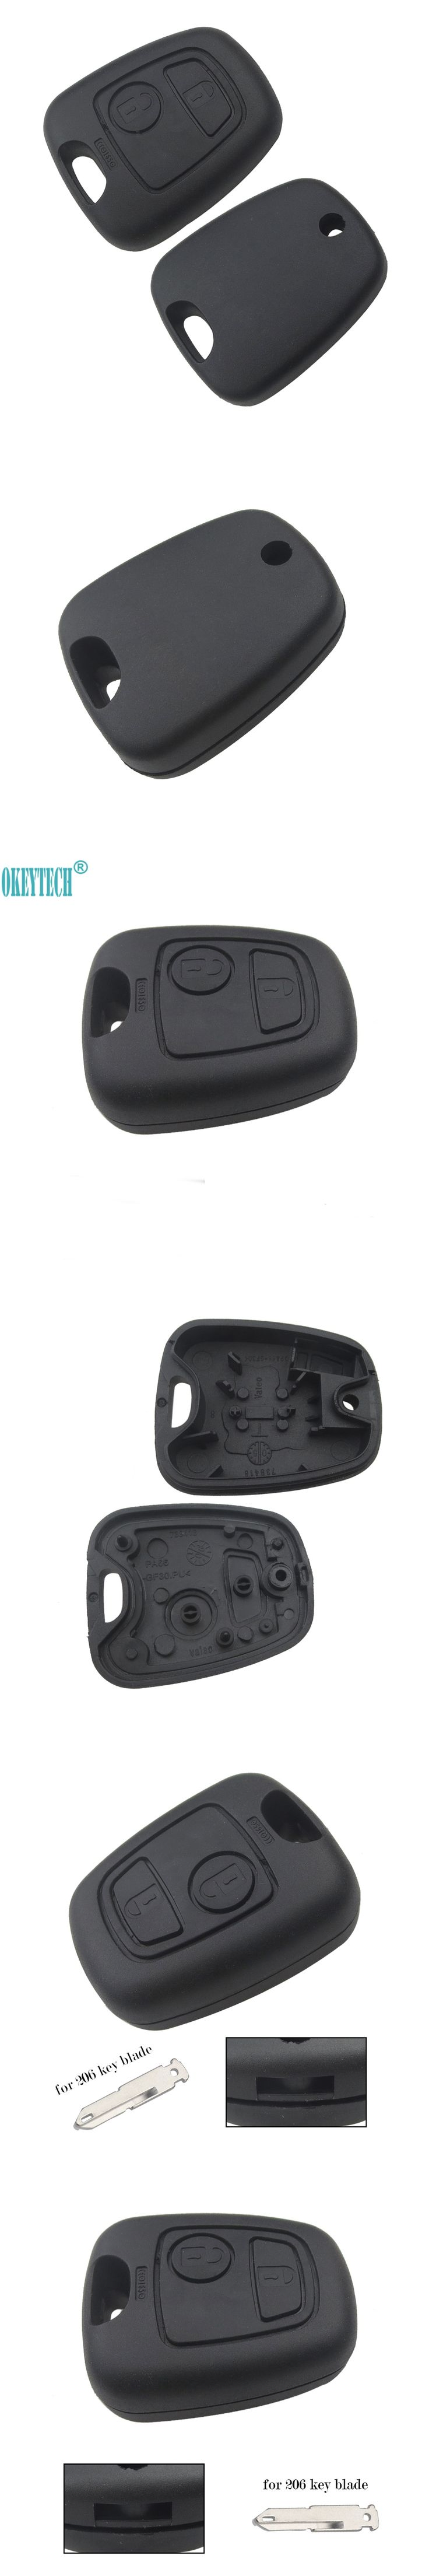 OkeyTech For Peugeot 206 307 407 Keyless Entry Replacement Shell 2 Buttons Remote Car Key Fob Case Cover Fob Not Include Blade